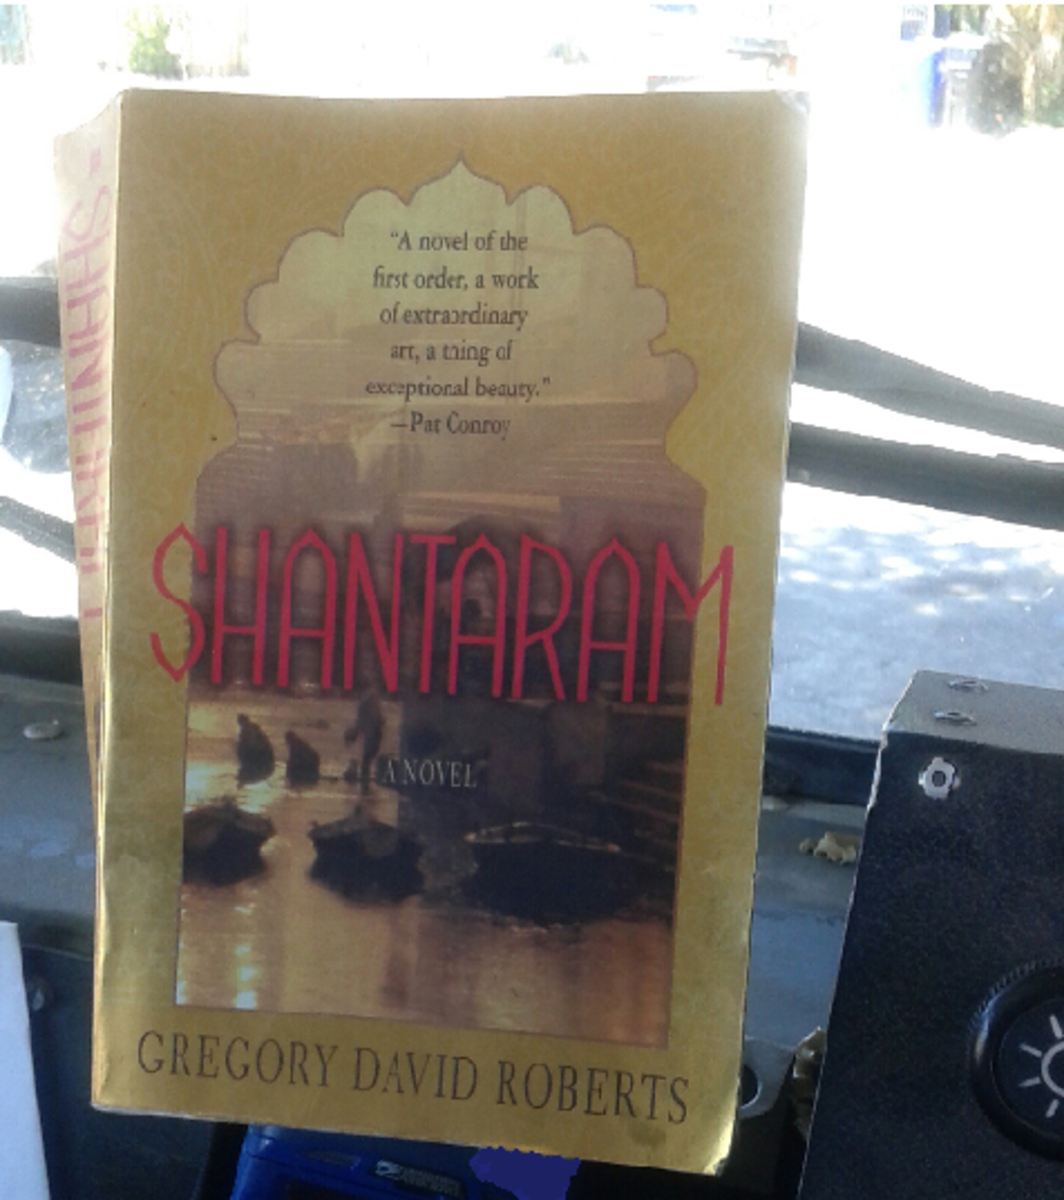 Join Mel for lunch beneath his favorite tree with the novel Shantaram by Gregory David Roberts